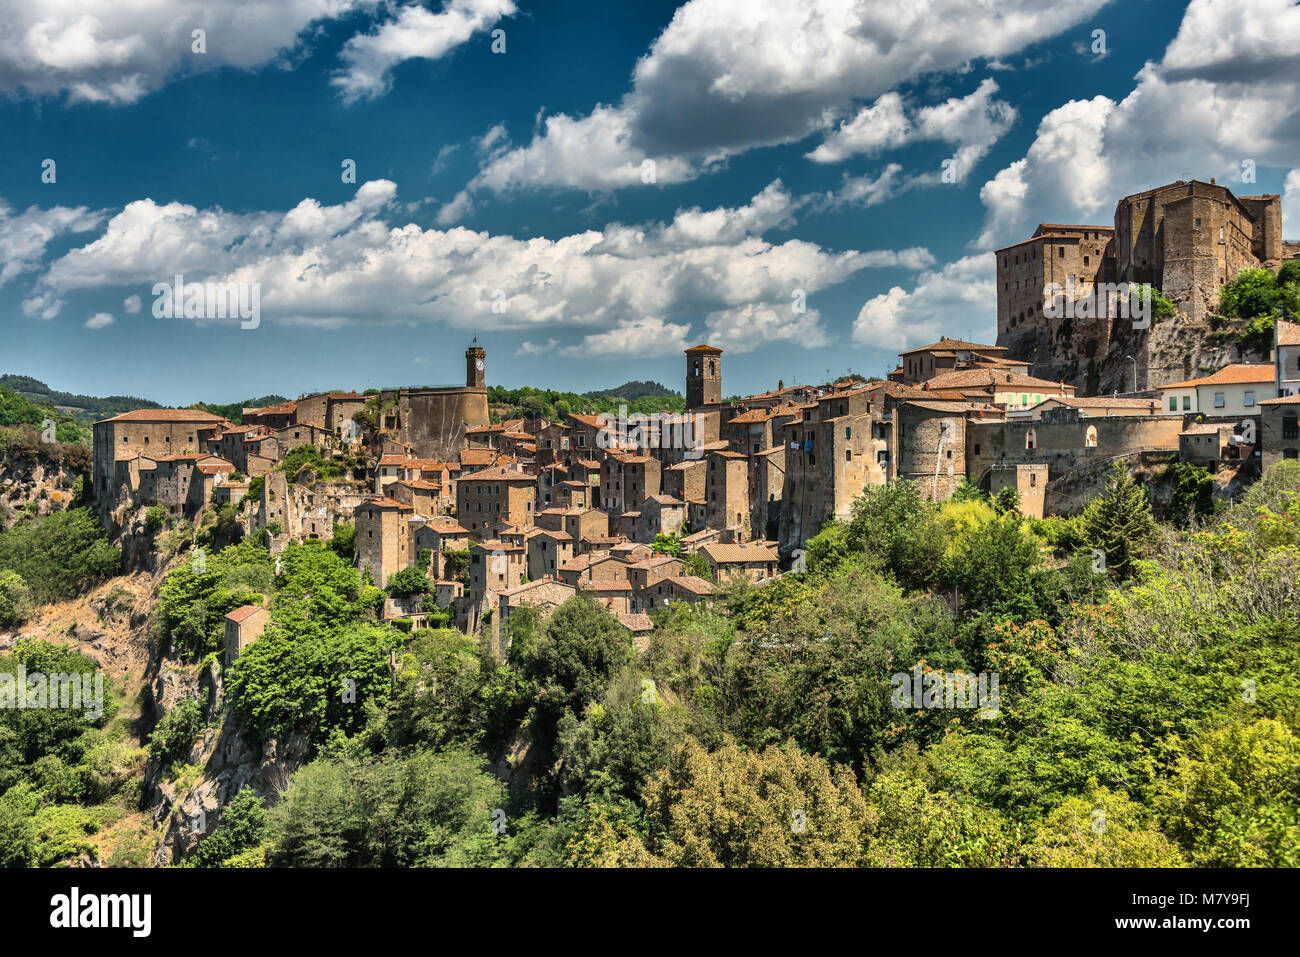 Panoramic view of Sorano, in the Province of Grosseto, Tuscany (Toscana), Italy - Stock Image